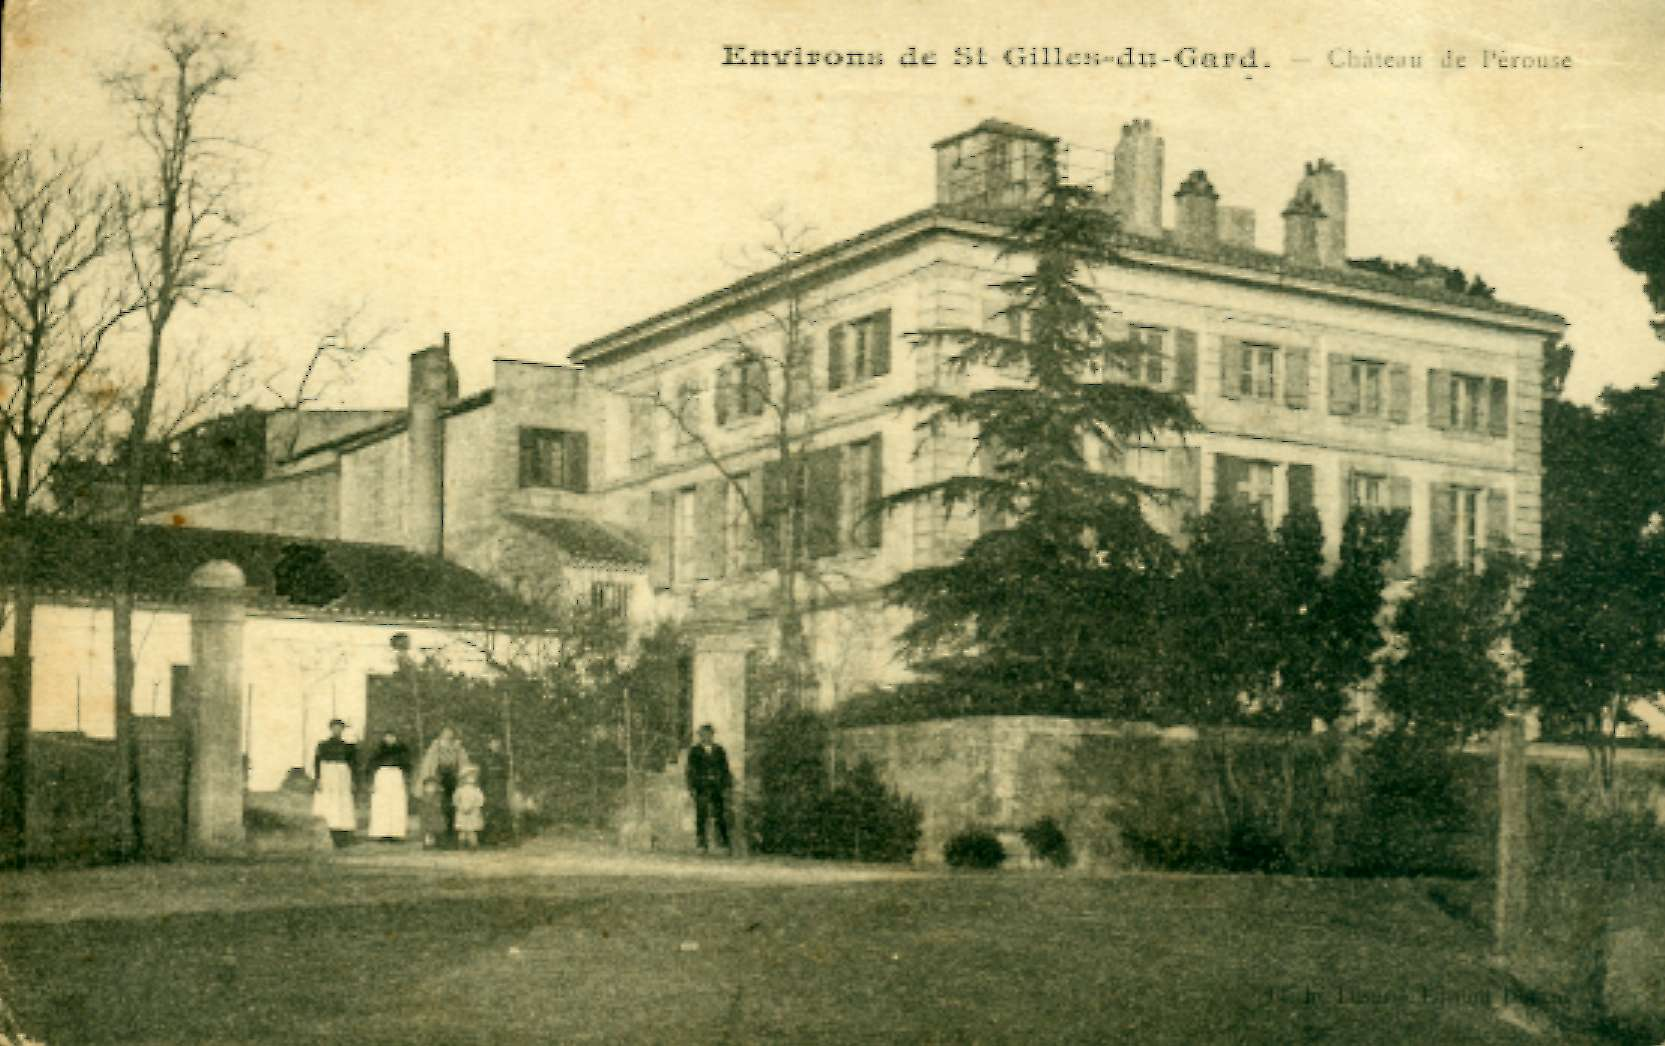 http://www.chateau-perouse.com/assets/bestanden/gallery/7/87.jpg